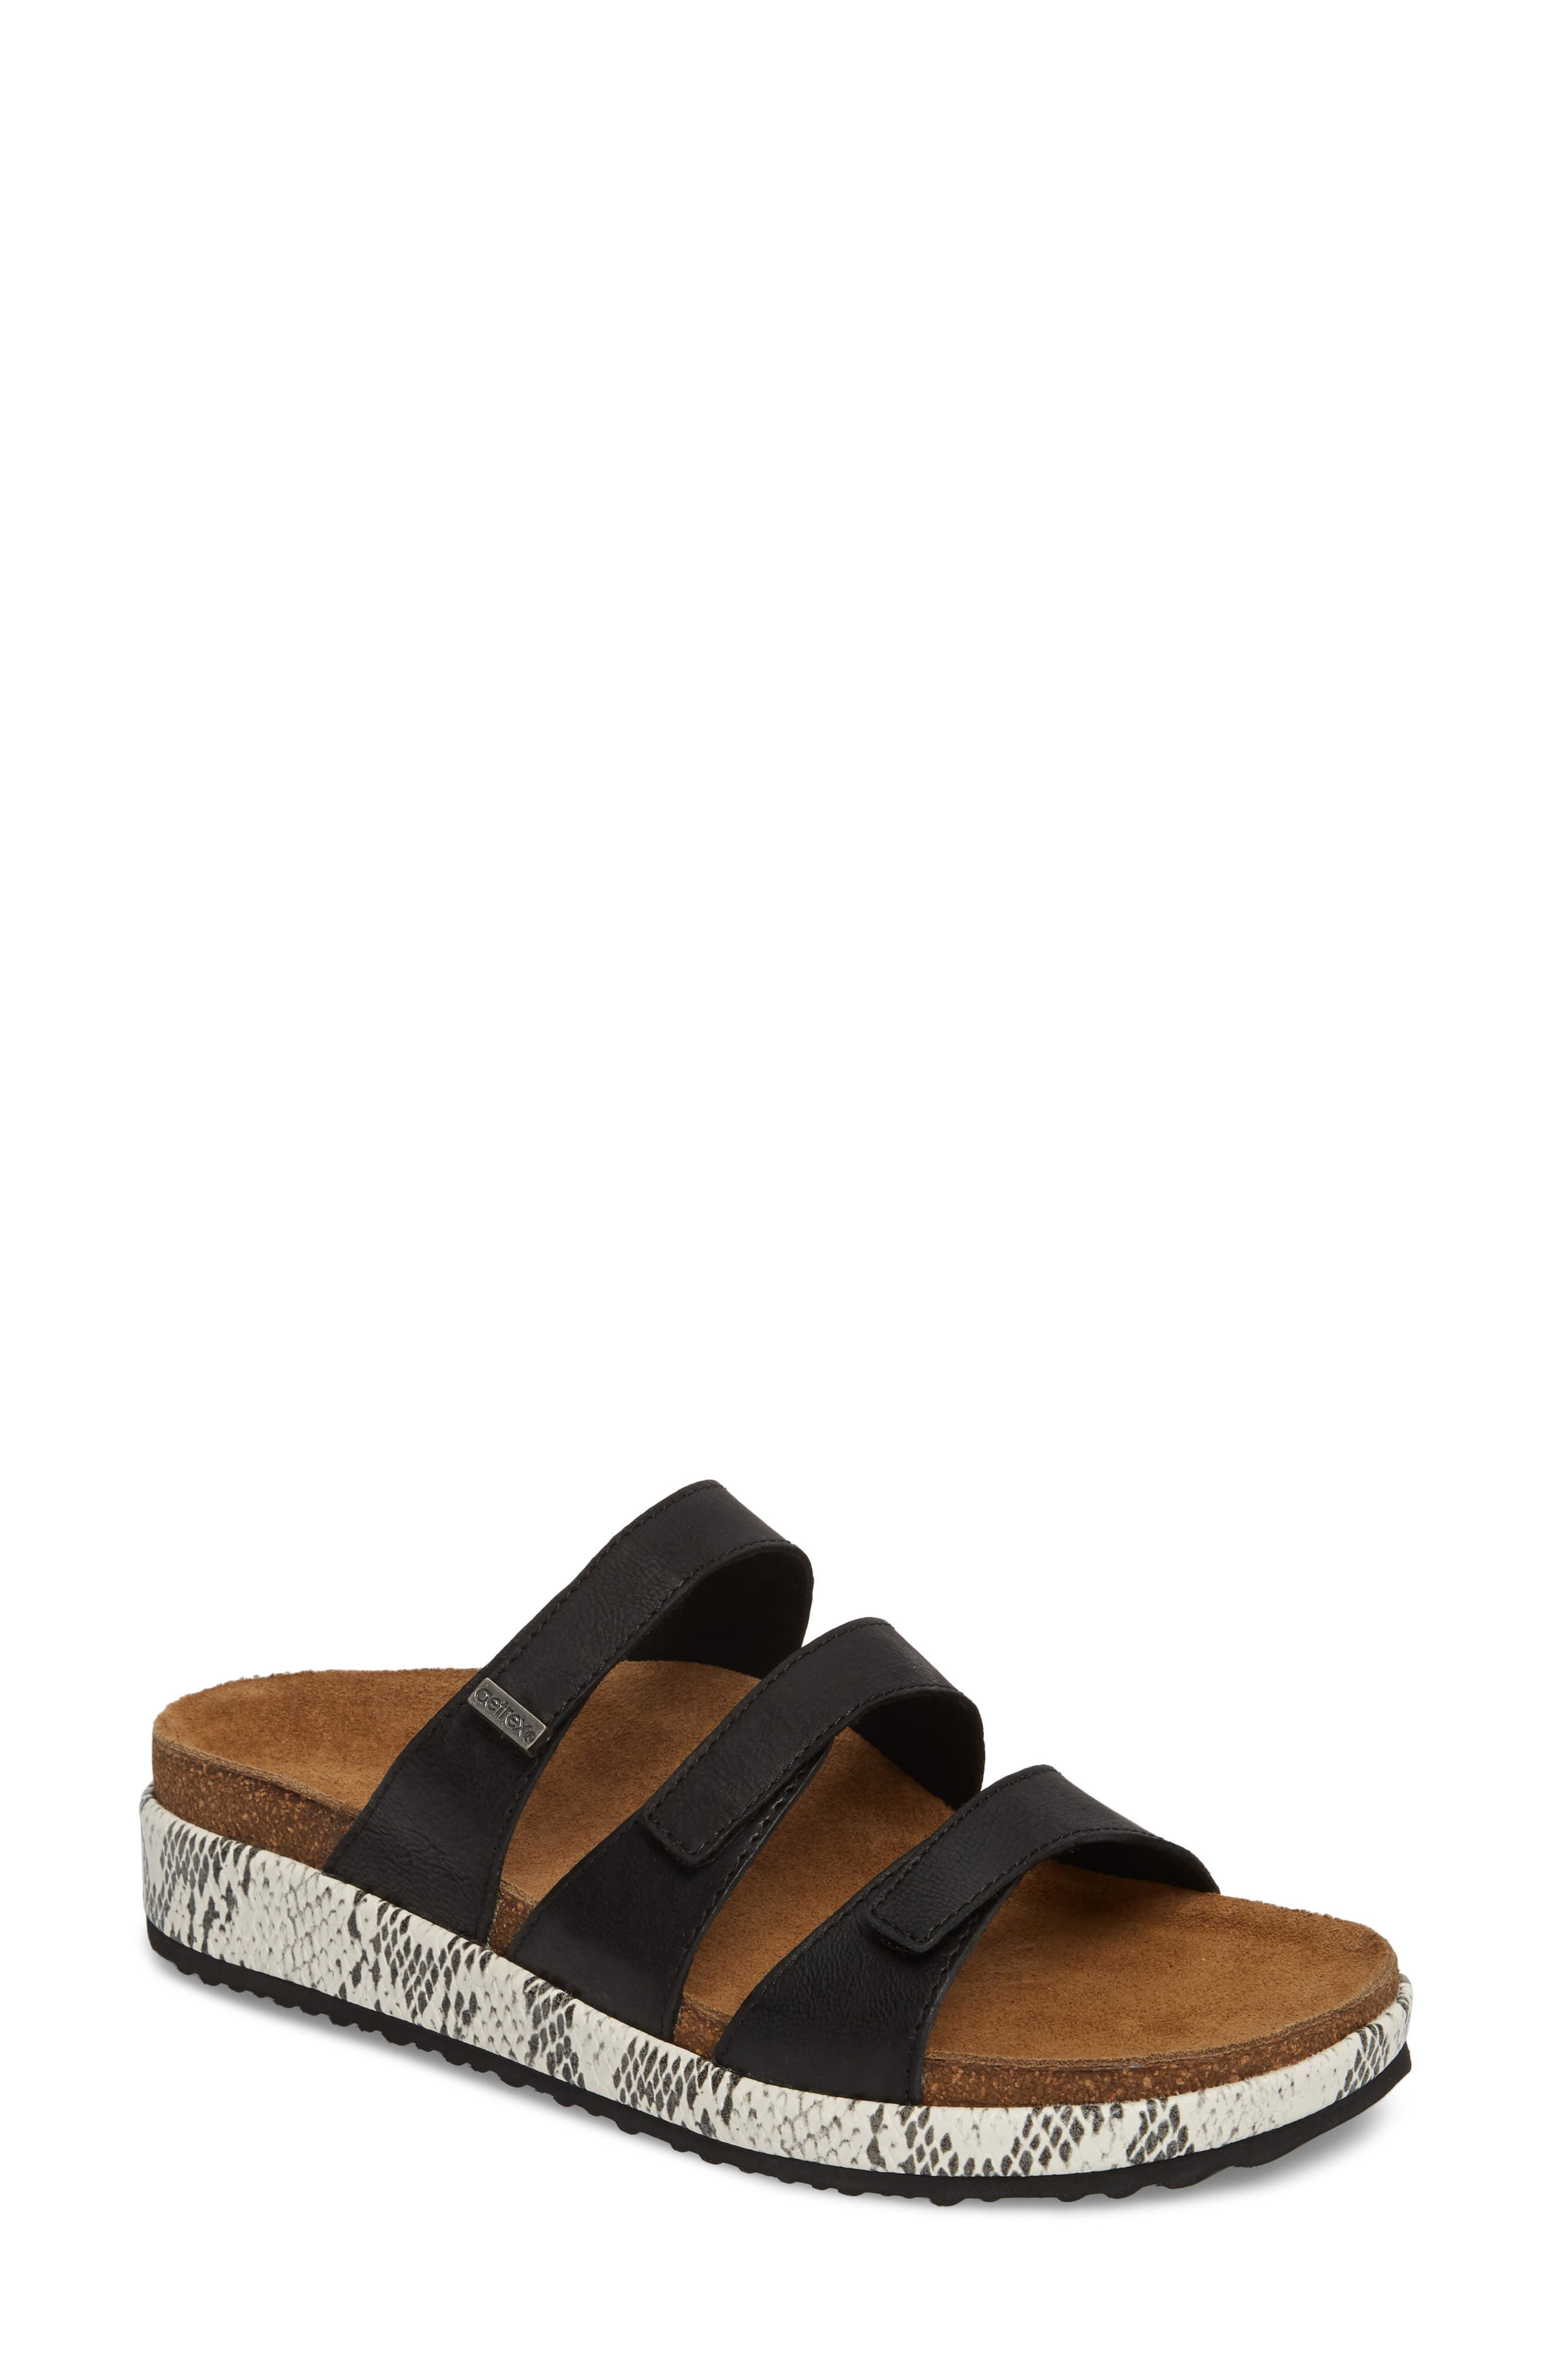 Isabelle Slide Sandal,                         Main,                         color, BLACK LEATHER